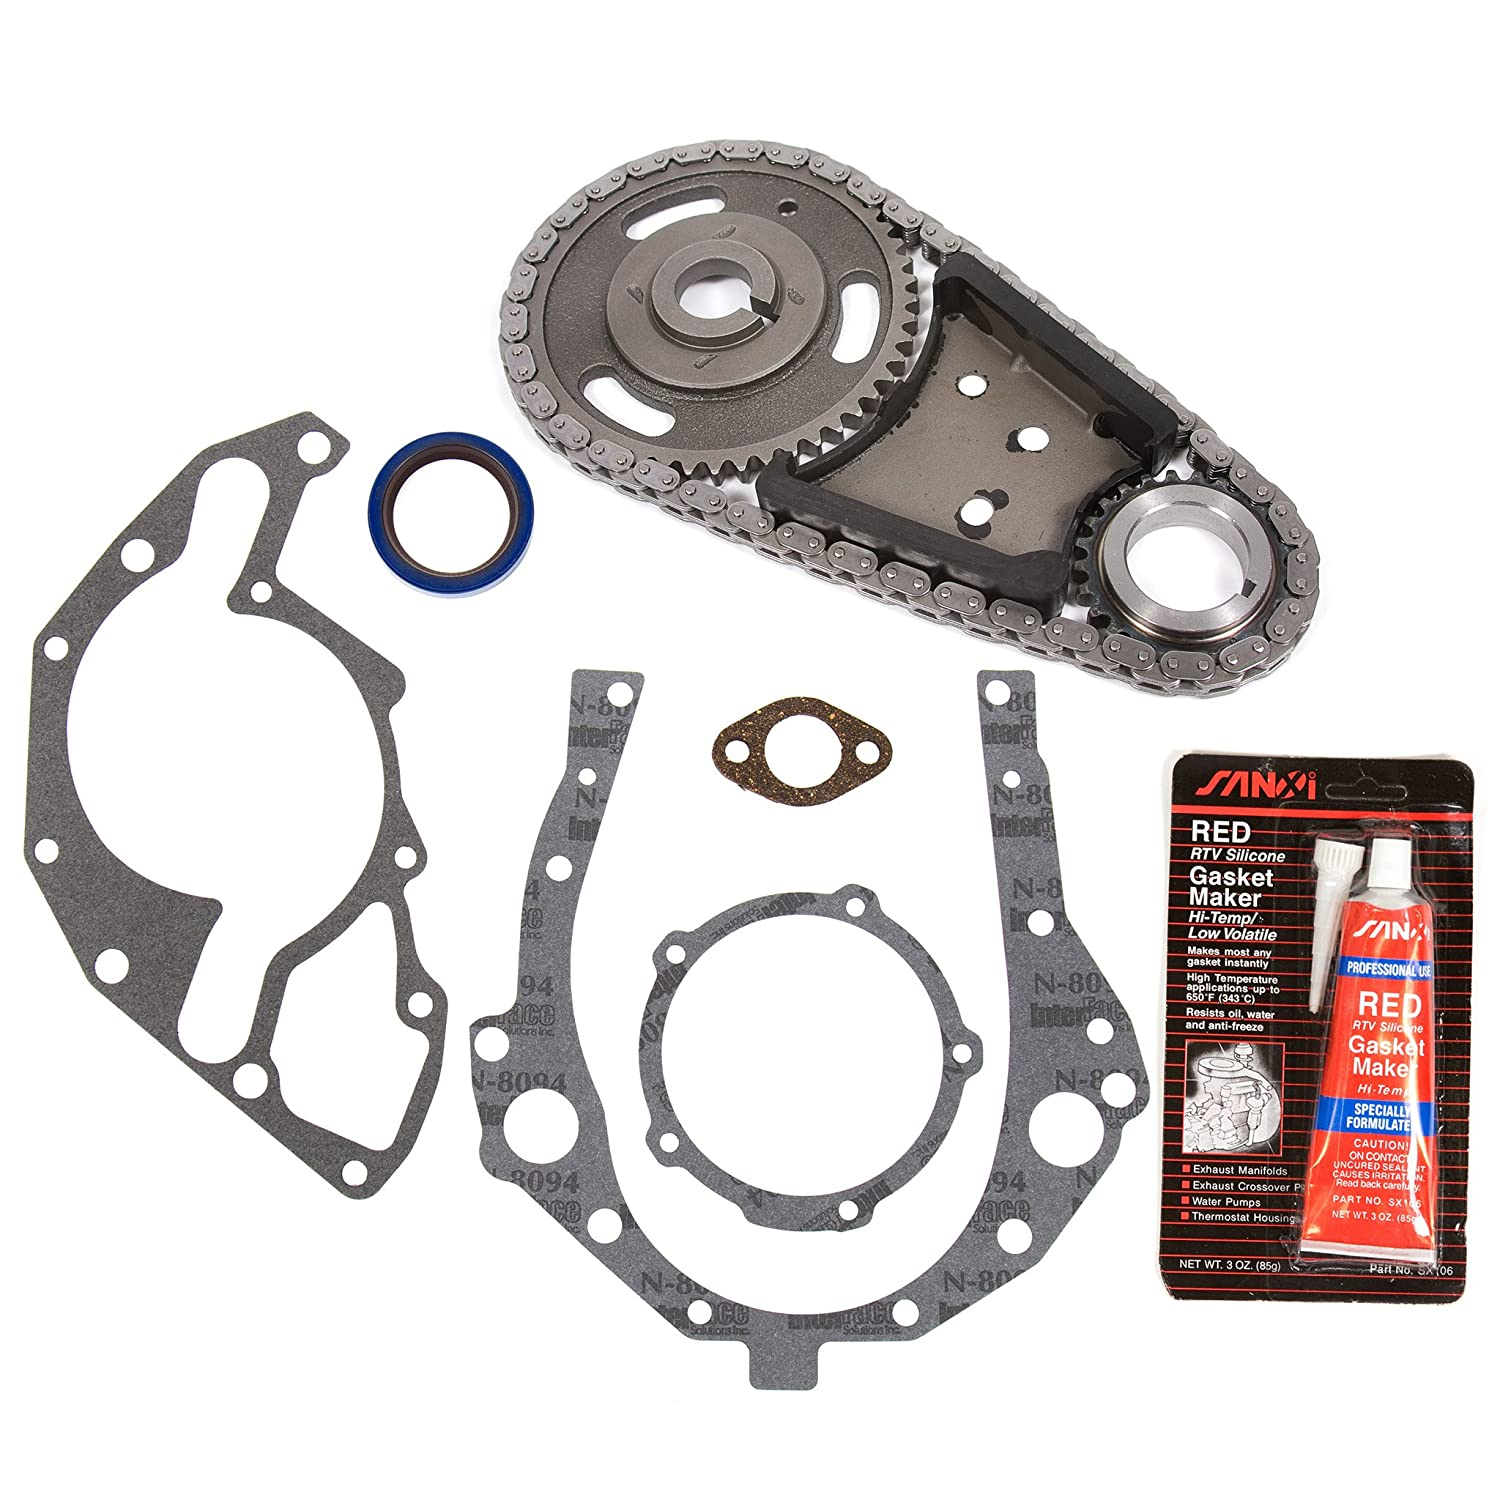 Chevy Lumina Timing Belt Pontiac Evergreen Chevrolet Oldsmobile Saturn Ohv Chain Kit Cover Gasket Automotive 1500x1500